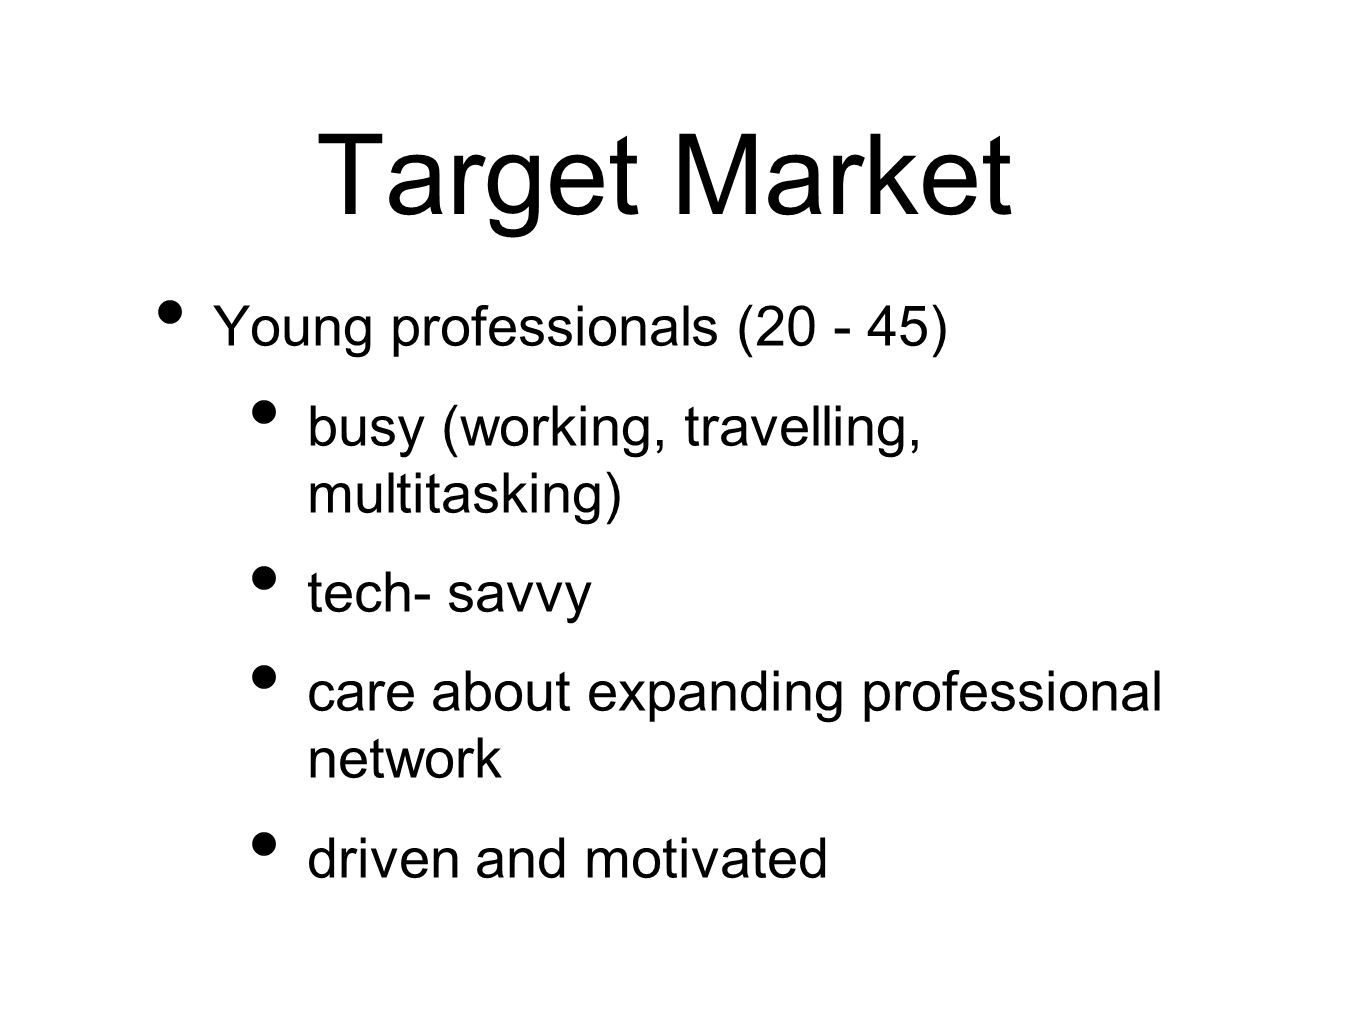 Target Market Young professionals (20 - 45) busy (working, travelling, multitasking) tech- savvy care about expanding professional network driven and